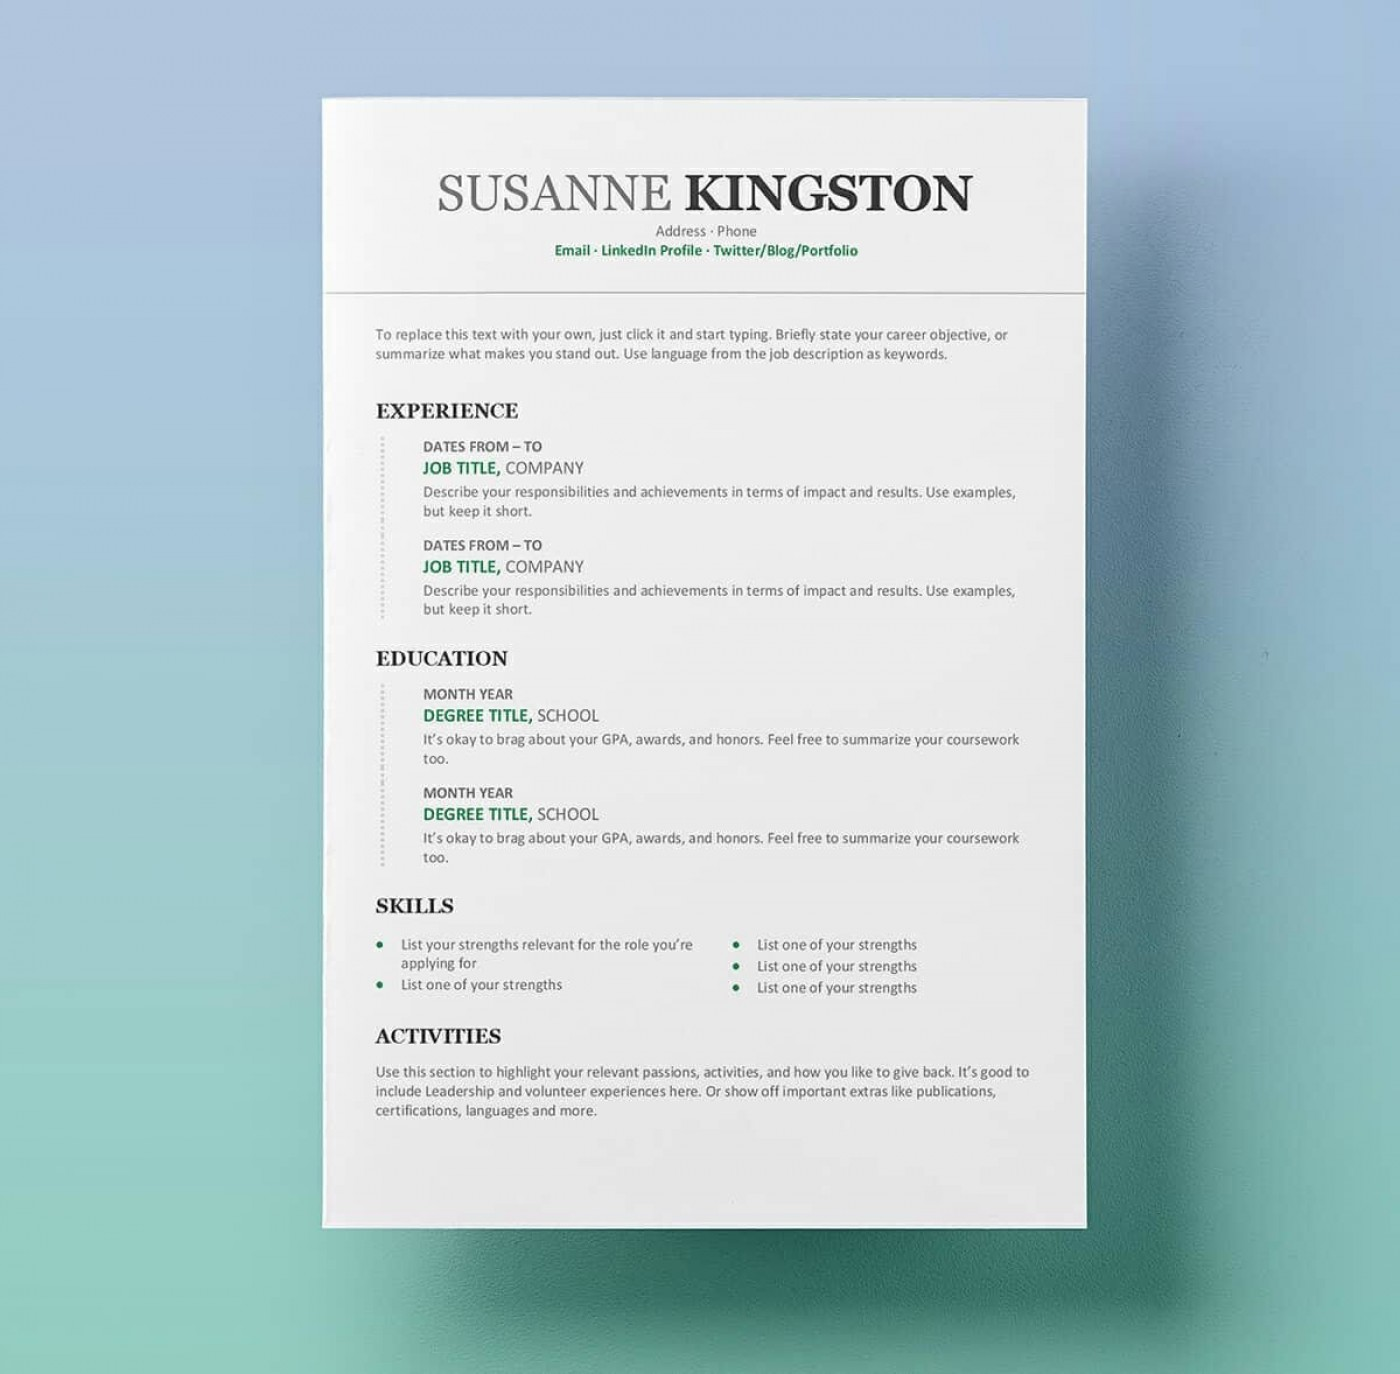 007 Exceptional Resume Template Word Free High Definition  Download 2020 Doc1400